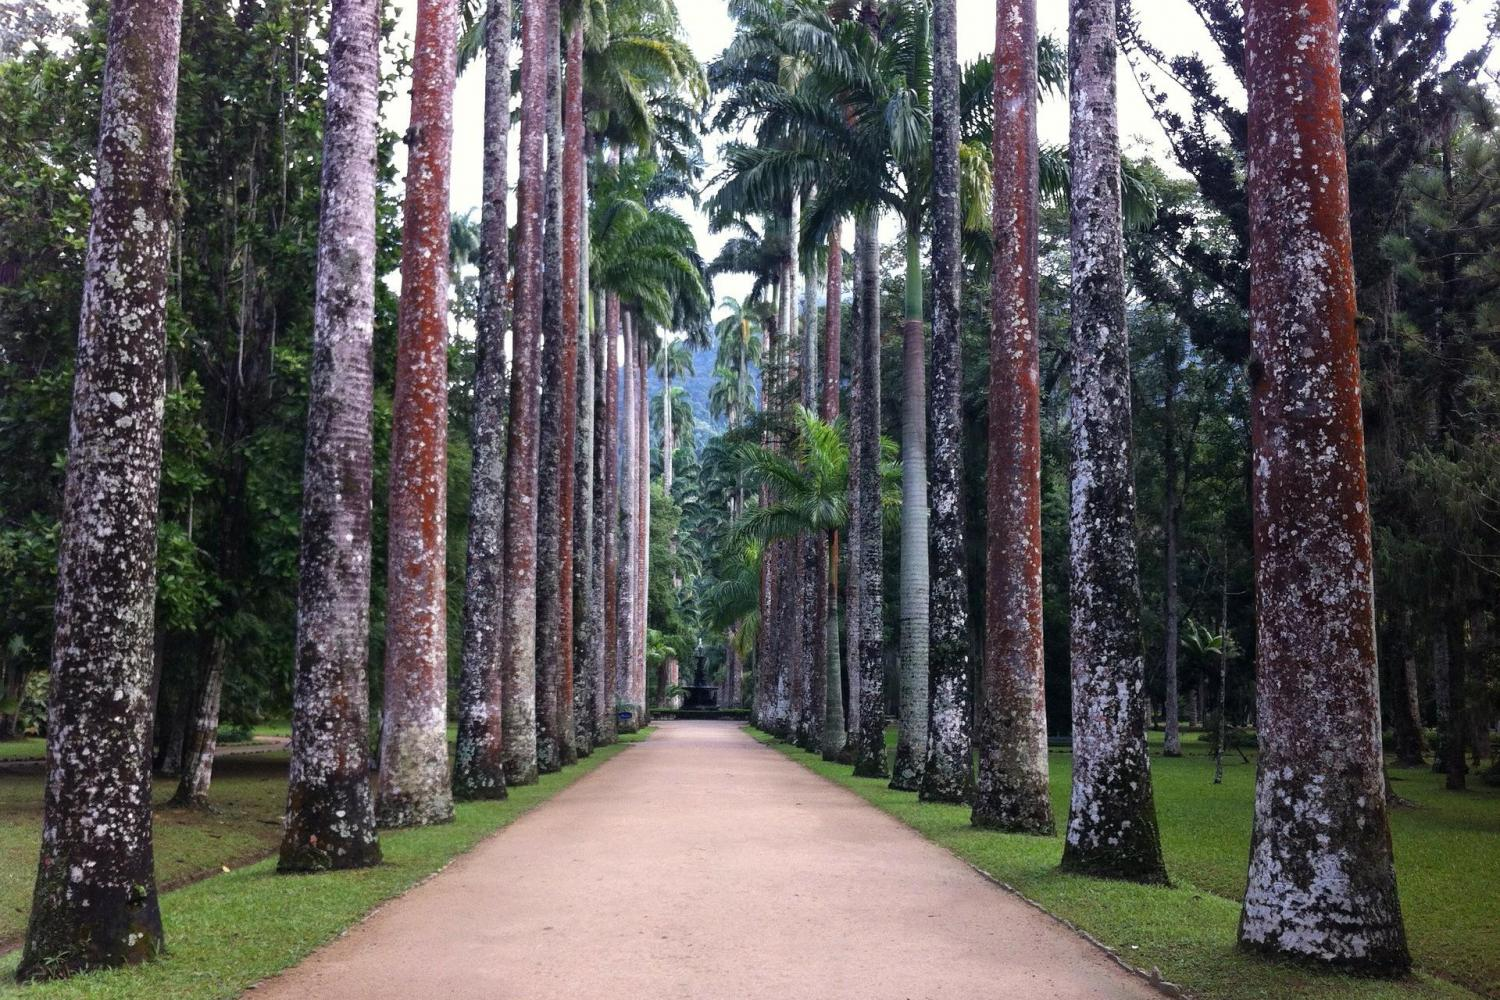 Check out the natural side of Rio on this tour of the Rainforest and Botanical Garden